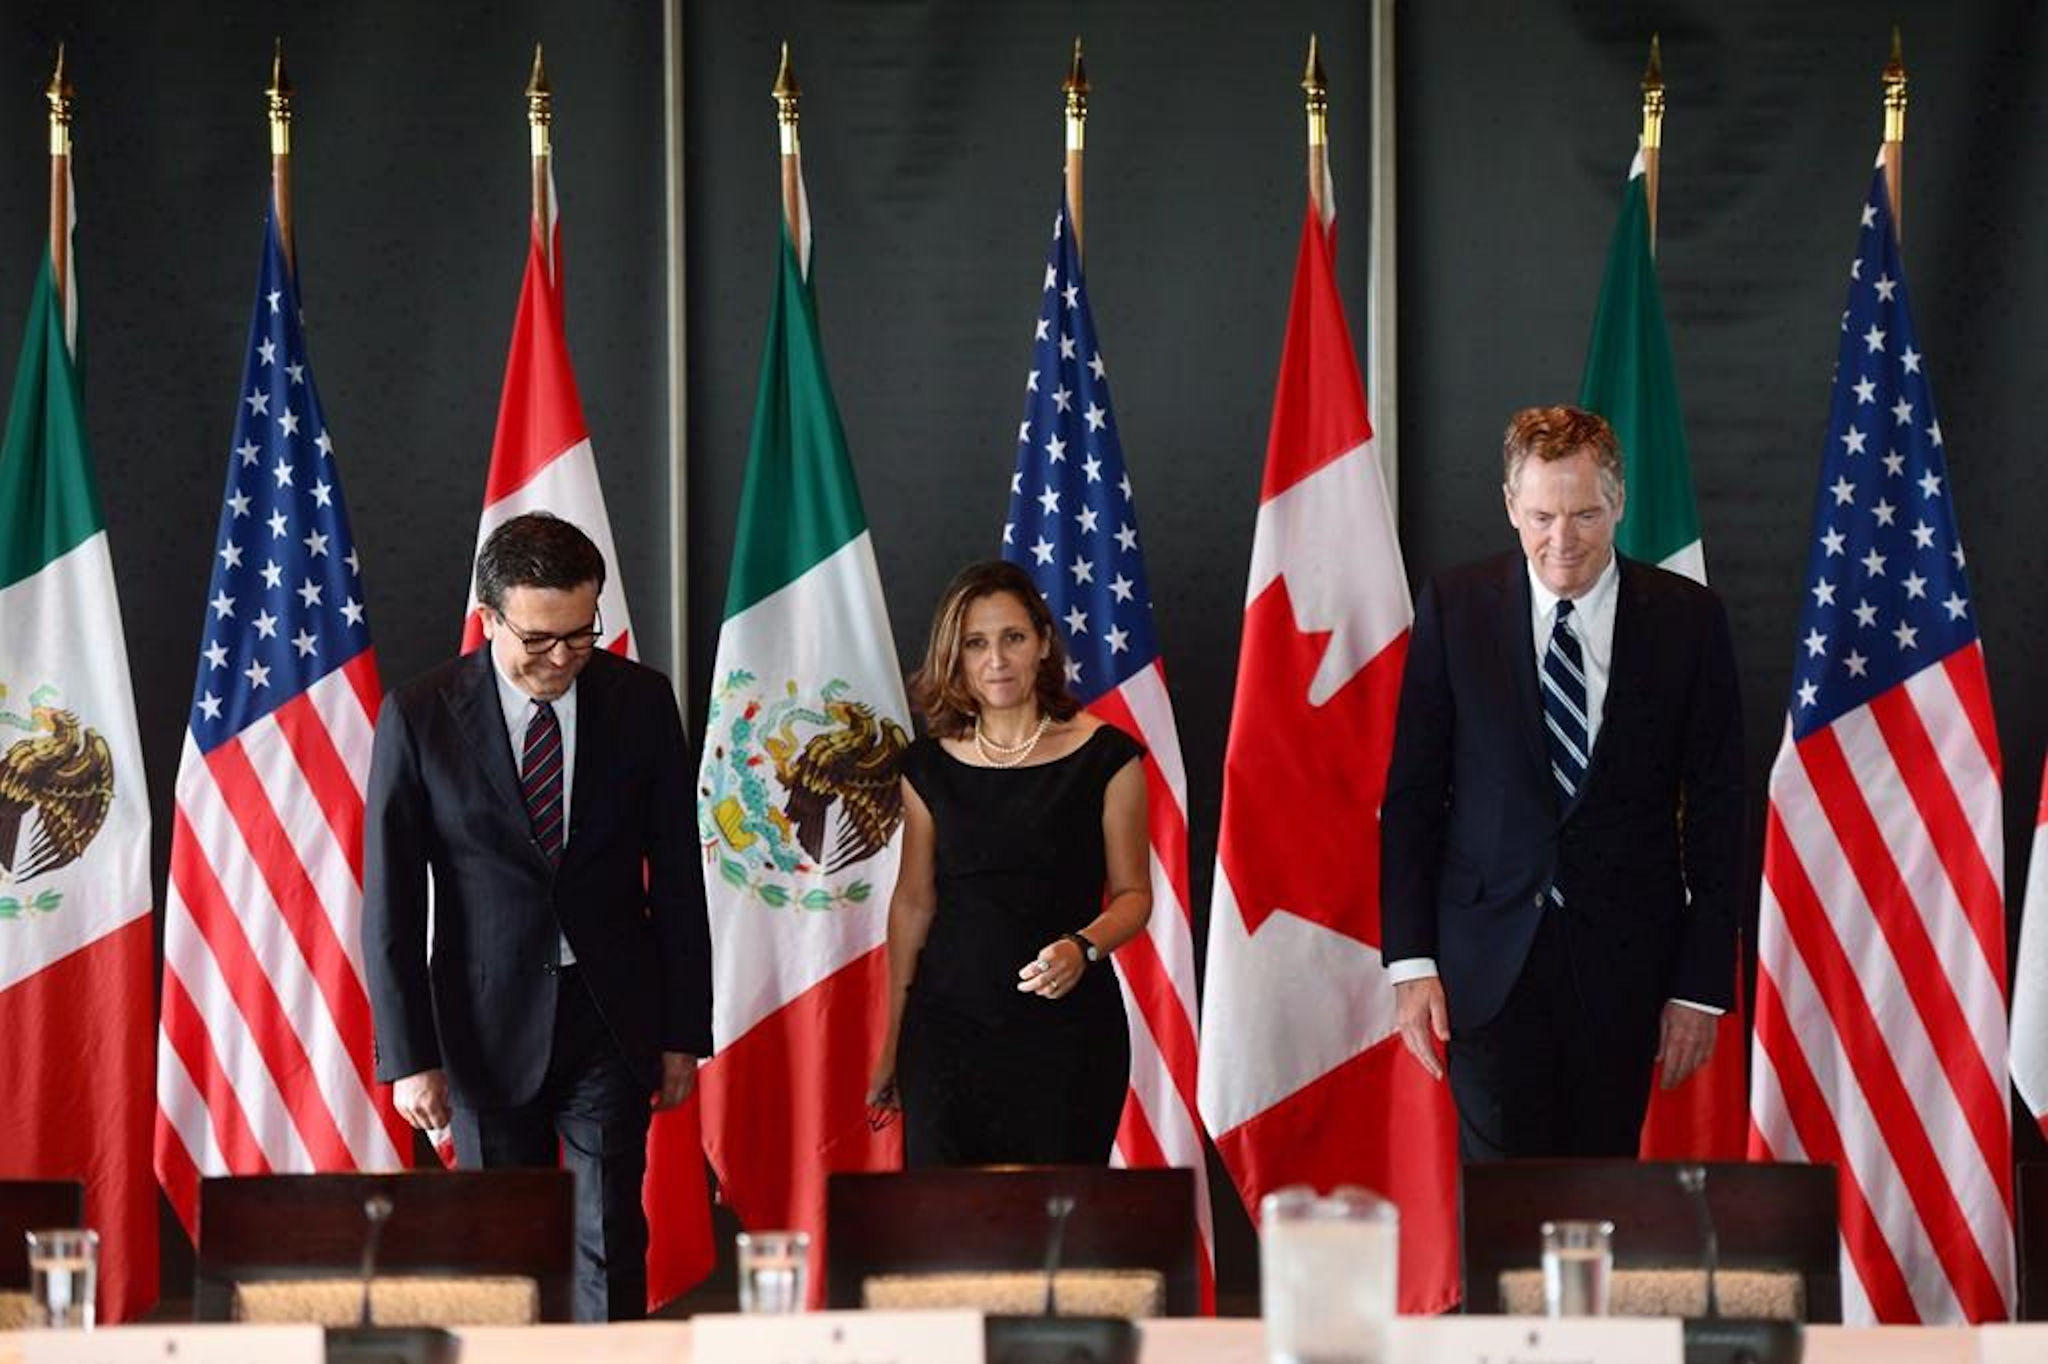 Mexico and Canada Face US Tariffs If NAFTA Talks Extend Beyond May